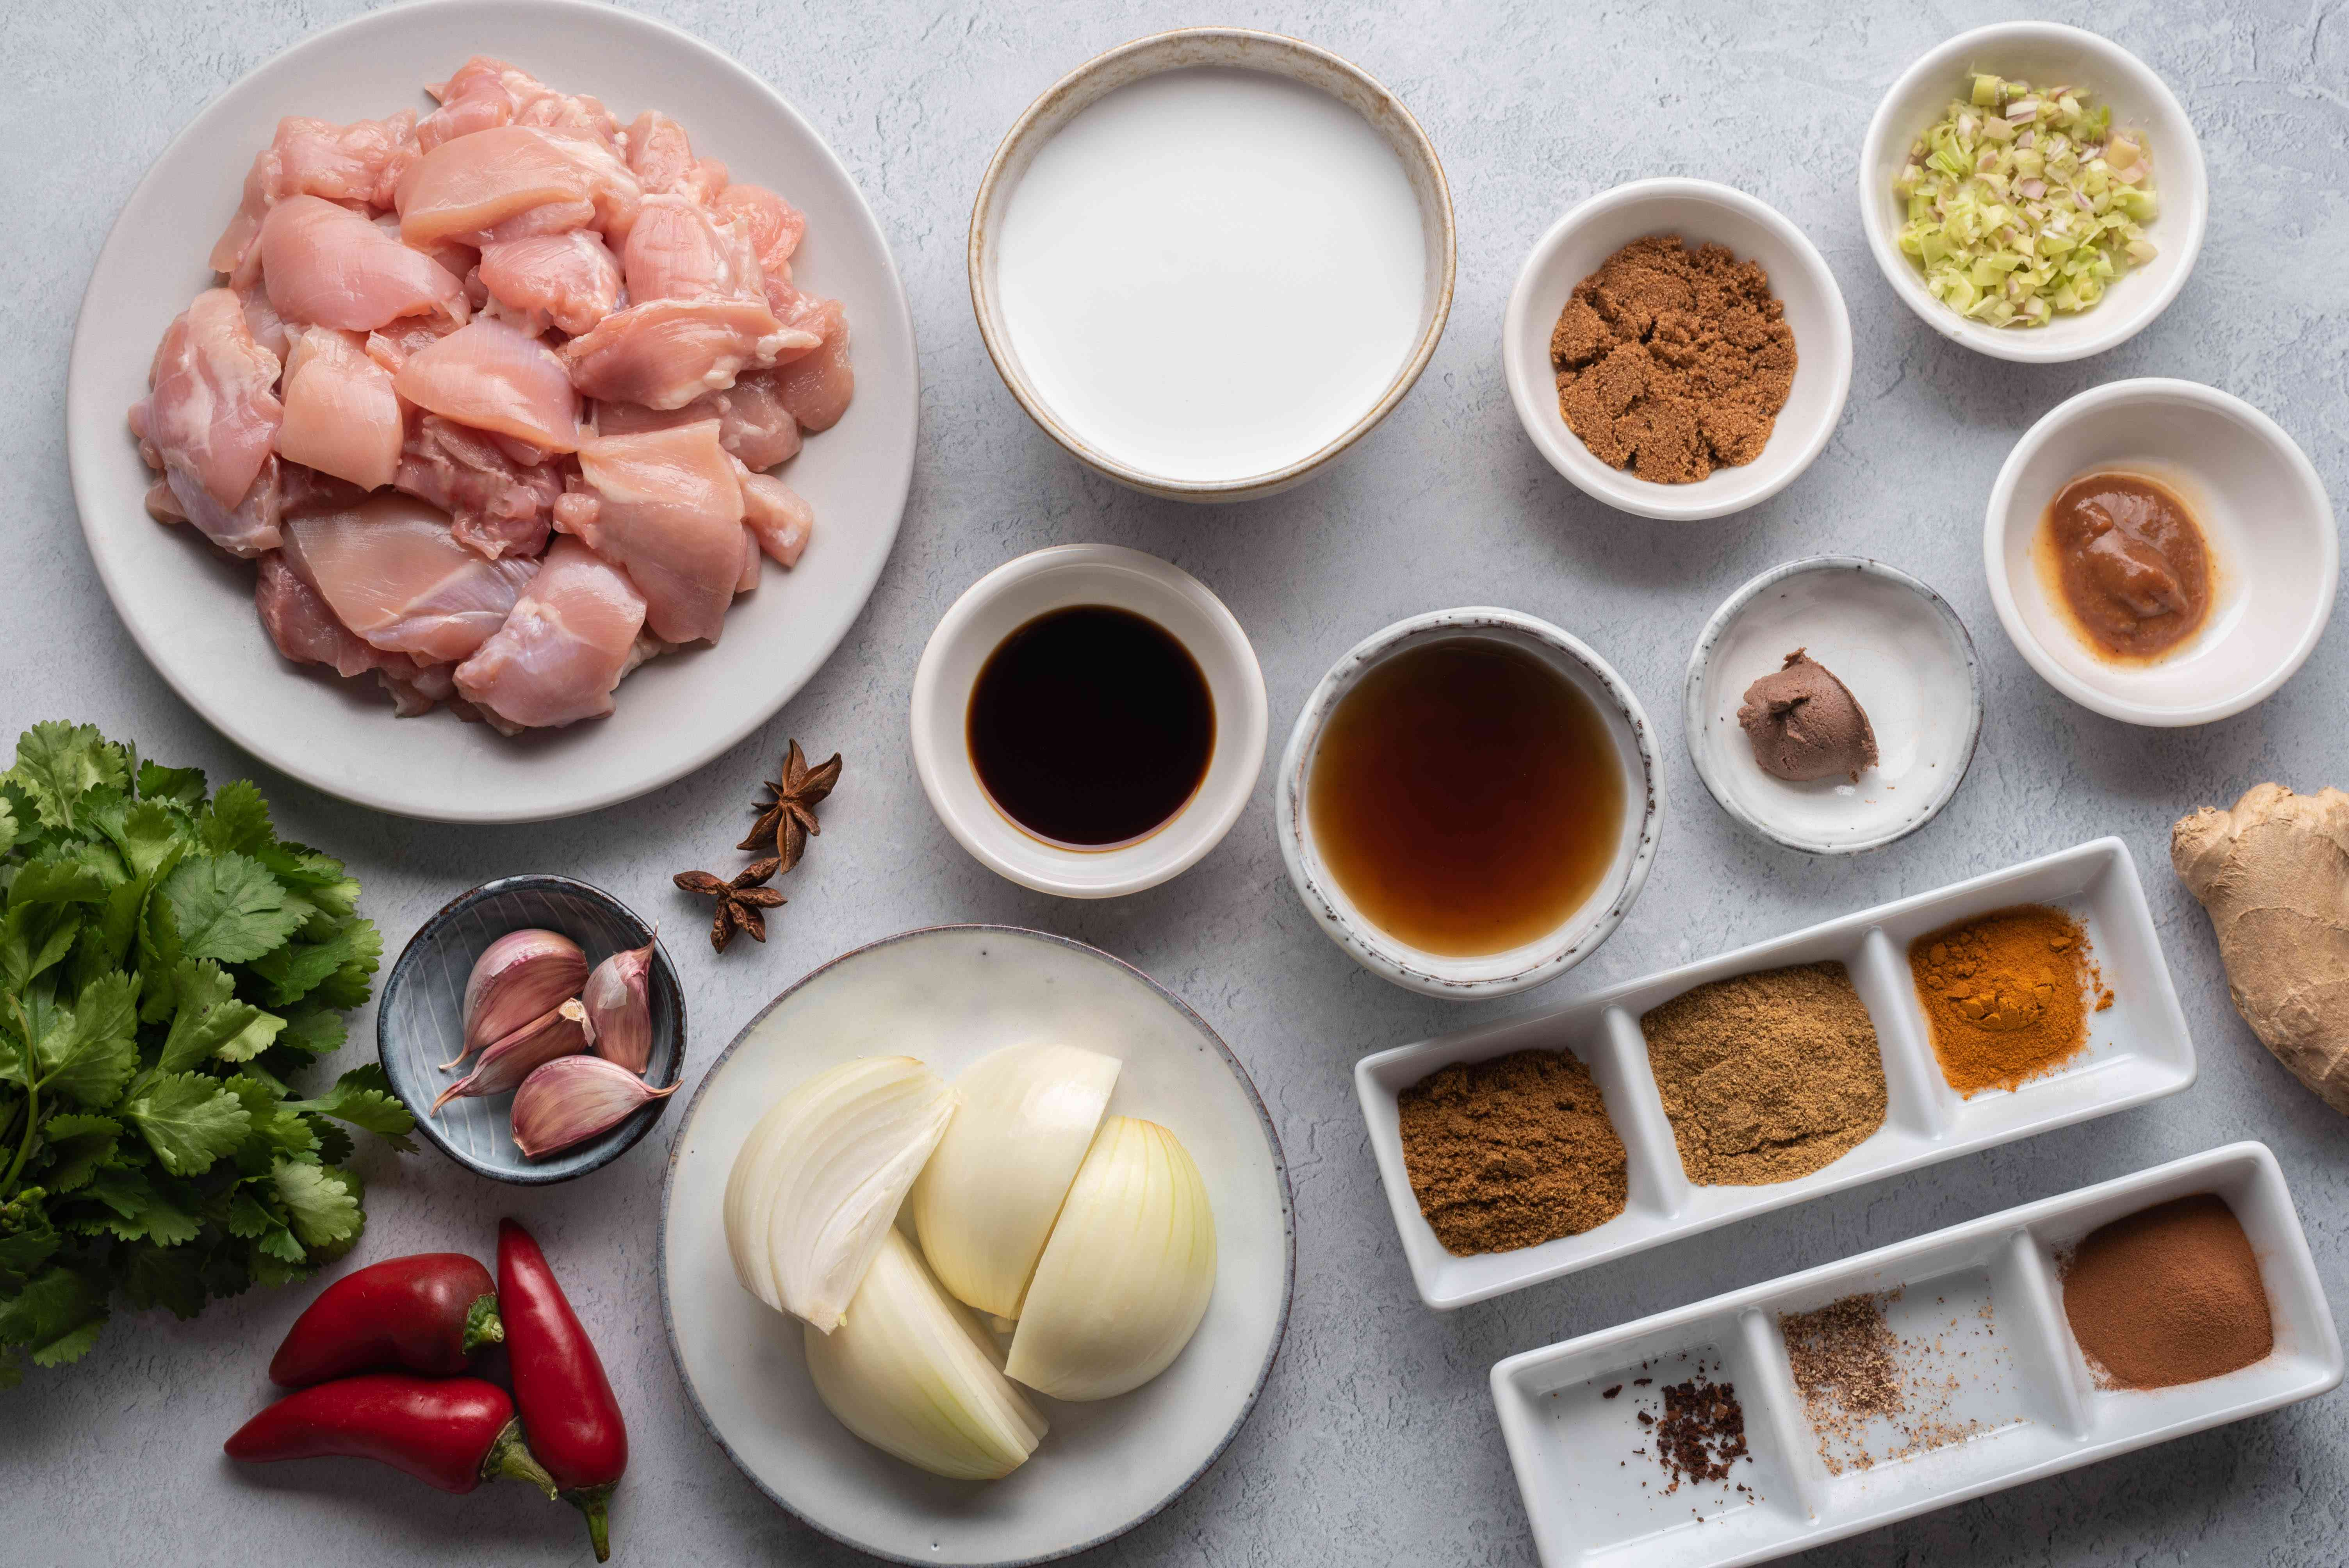 Ingredients to make Rendang chicken curry